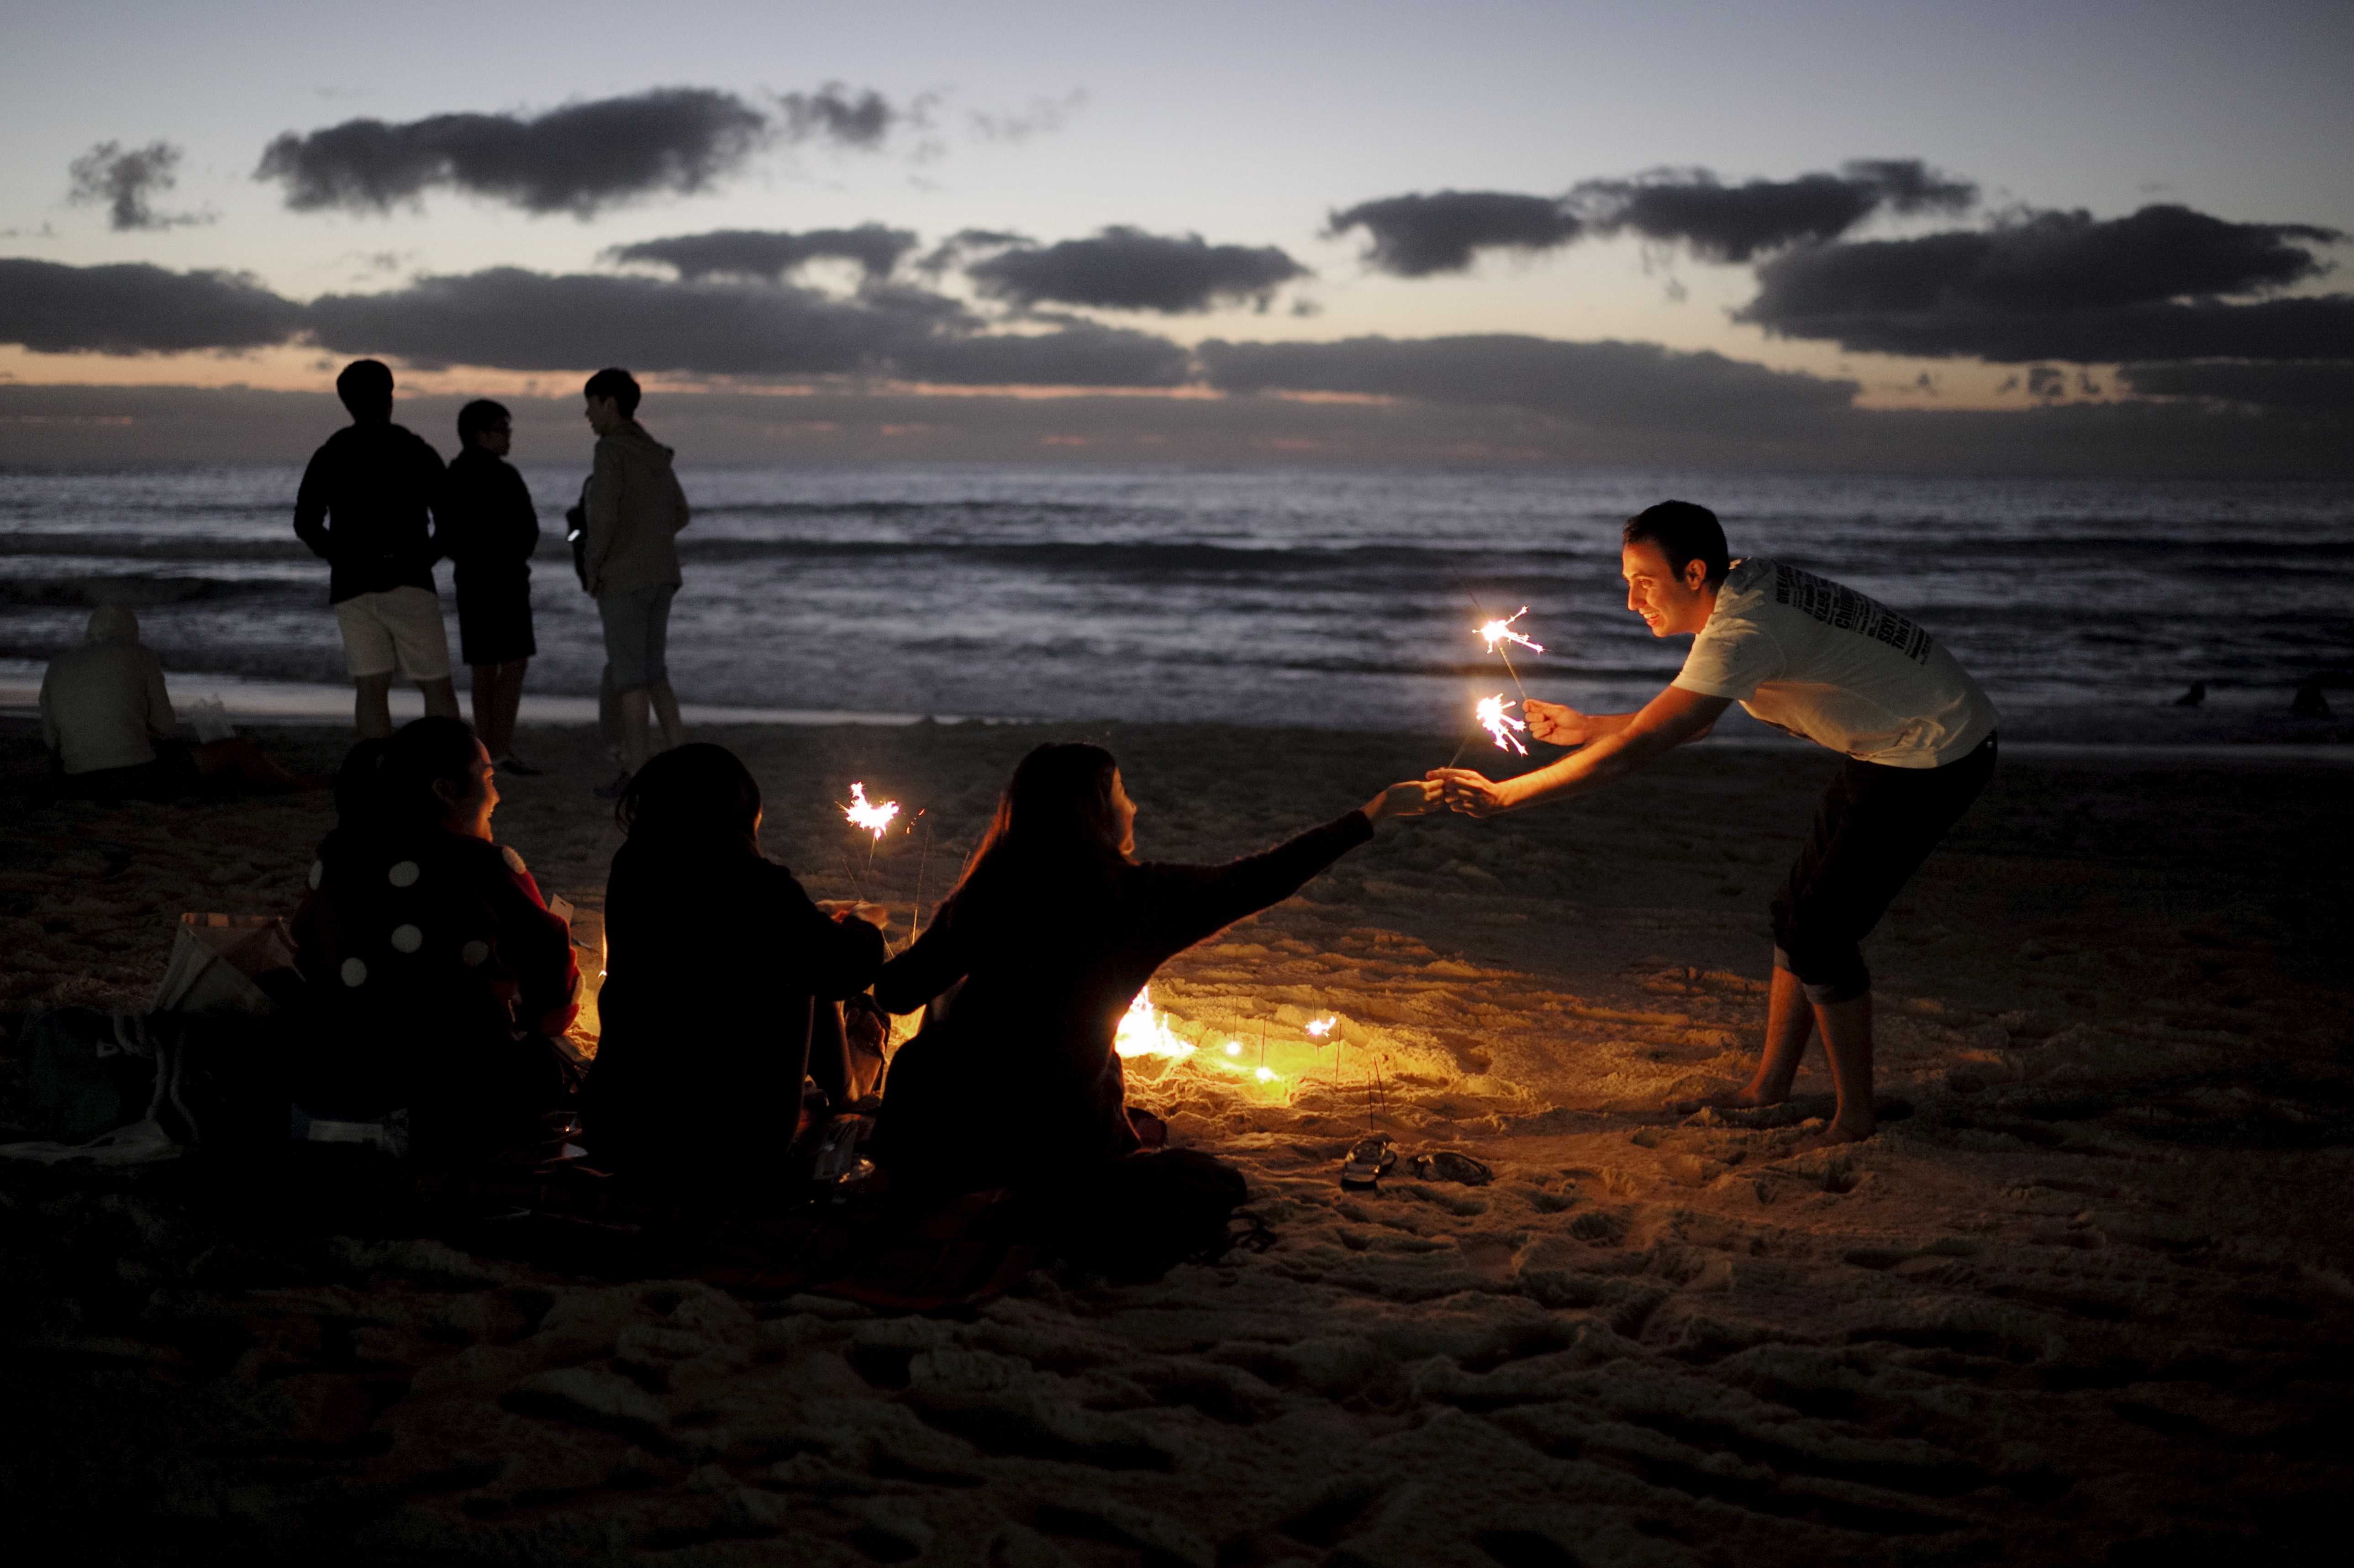 A New Year's reveller (R) receives a gift of sparklers as hundreds of partygoers await the first sunrise of the new year on Australia's Bondi Beach in Sydney. Photo by Jason Reed/Reuters